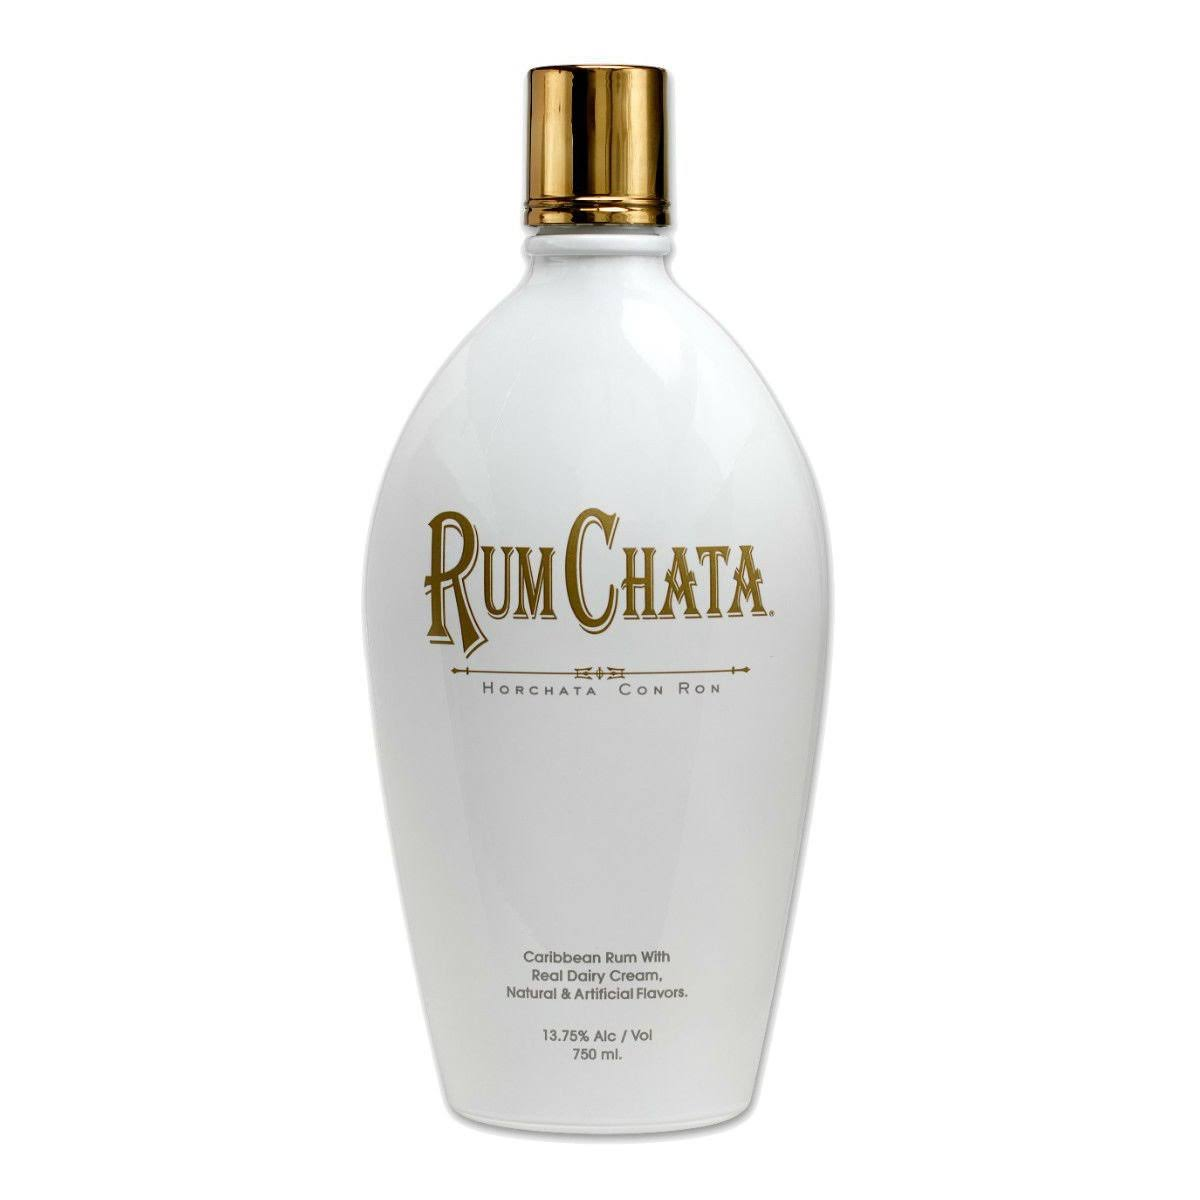 Rum Chata Horchata Con Ron - 375 ml bottle